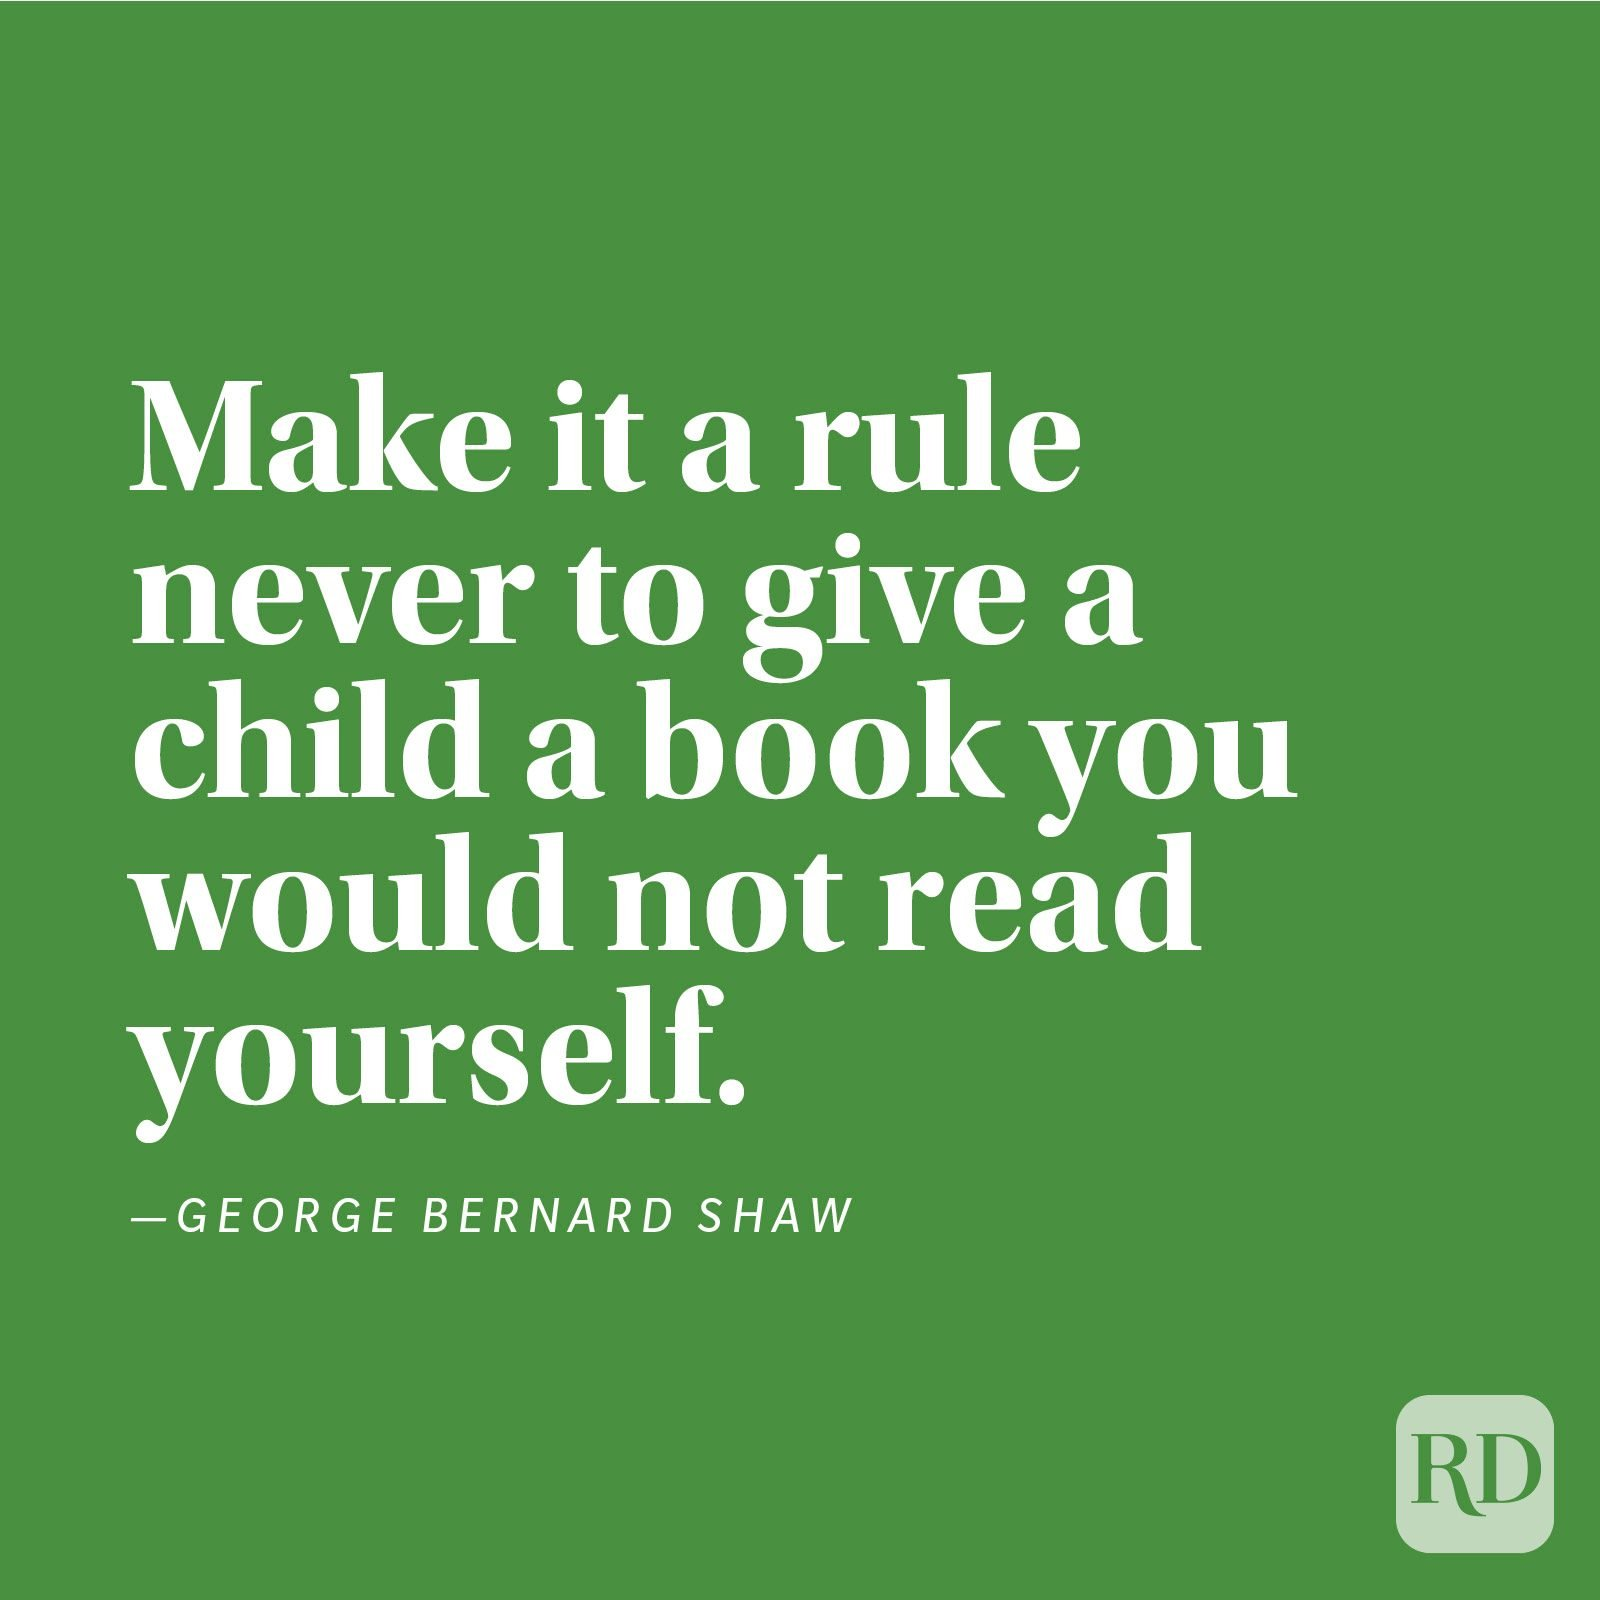 """Make it a rule never to give a child a book you would not read yourself."" —George Bernard Shaw."